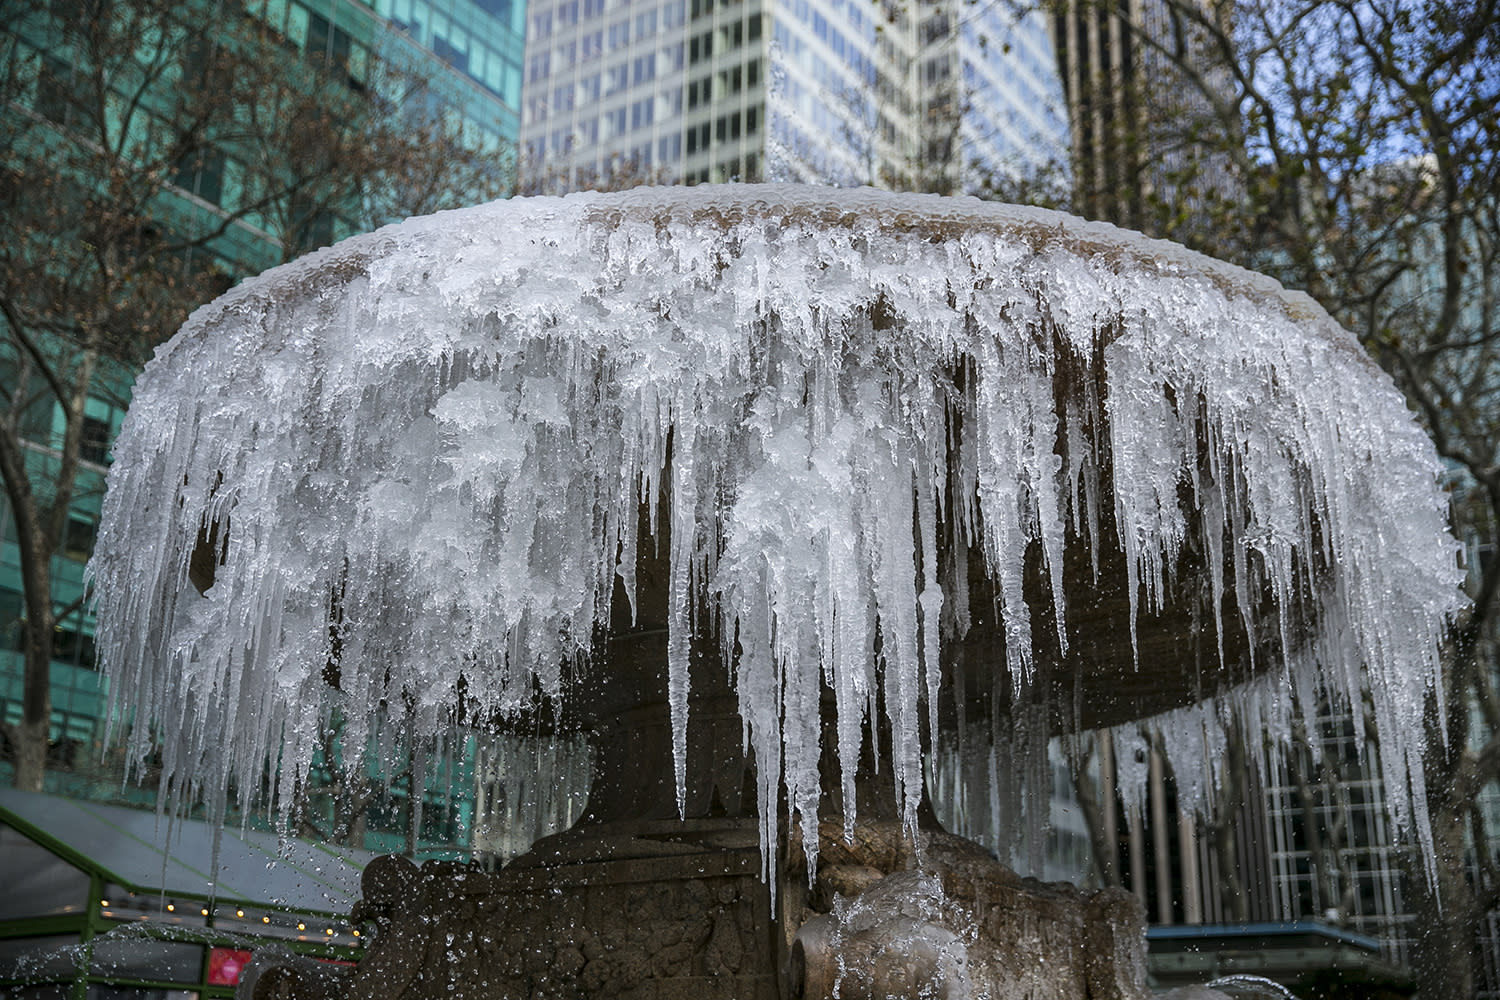 <p>Icicles form on the Josephine Shaw Lowell Fountain in Bryant Park in New York City. Much of the northern Mid-Atlantic and Northeast will stay cold for the next couple of days as the arctic air remains stuck over the northern Appalachians, the National Weather Service said. (Gordon Donovan/Yahoo News) </p>